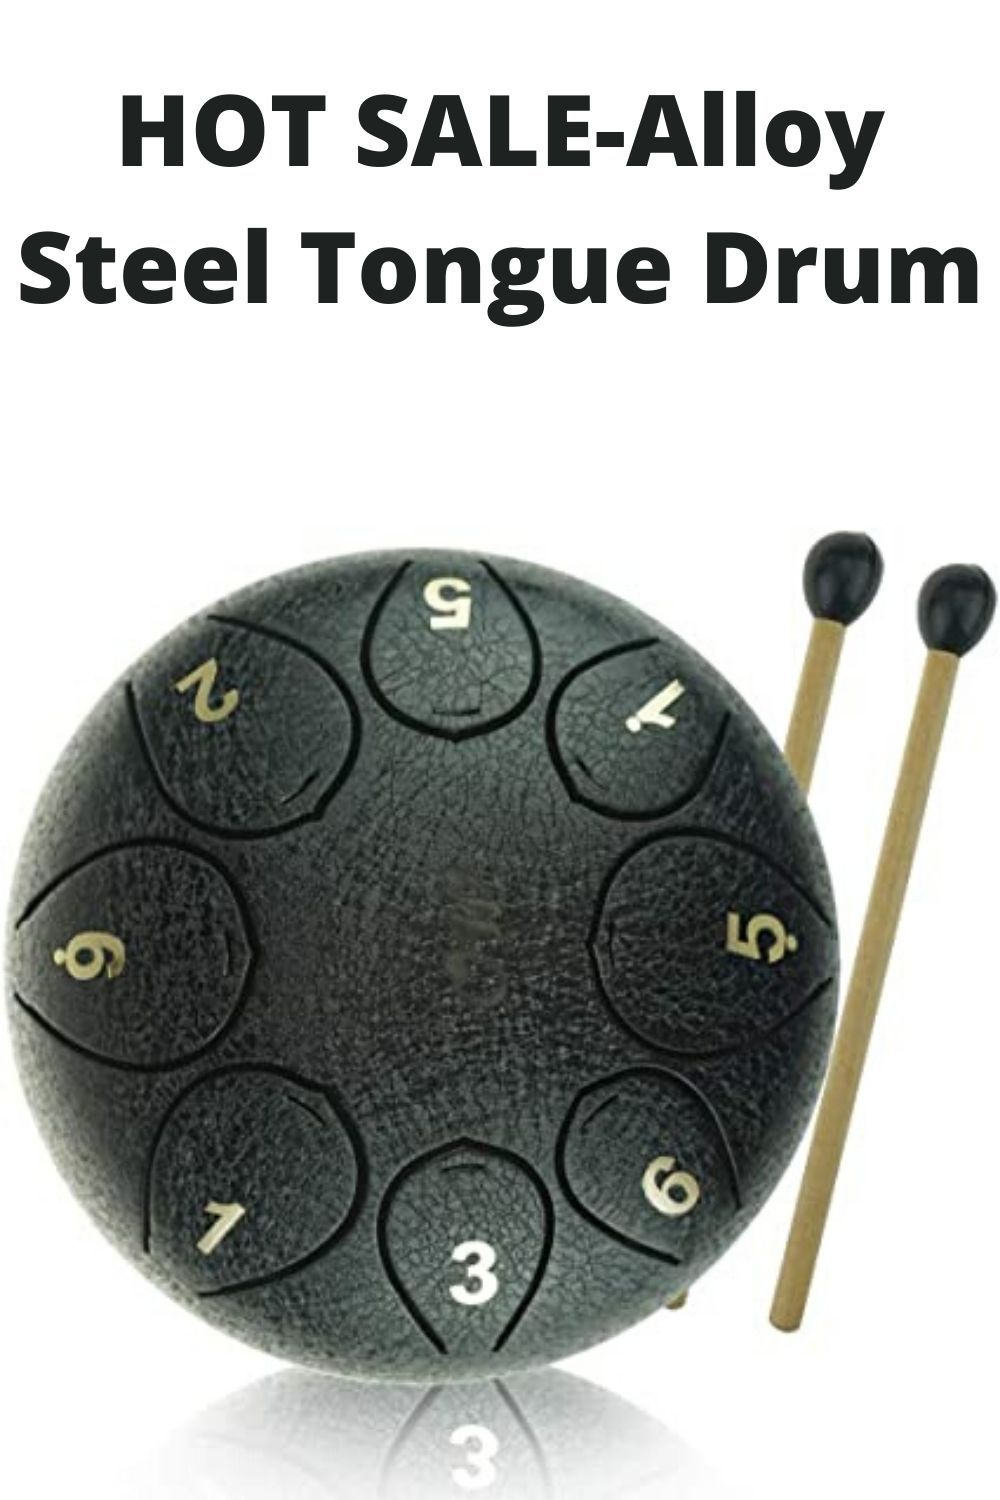 Pin on Steel Tongue Drum